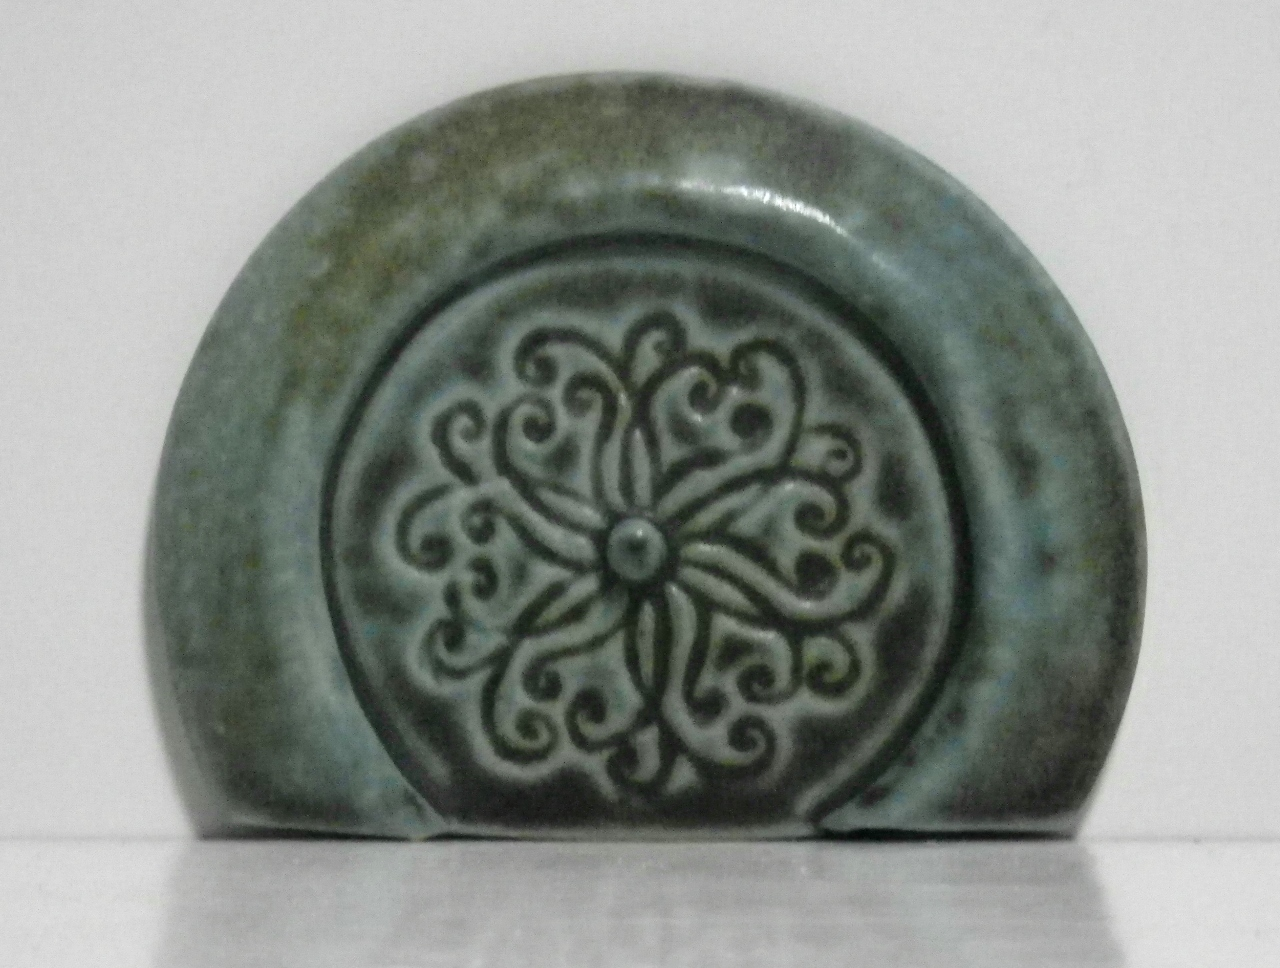 small green round hobbit style fairy door embossed with a swirl pattern